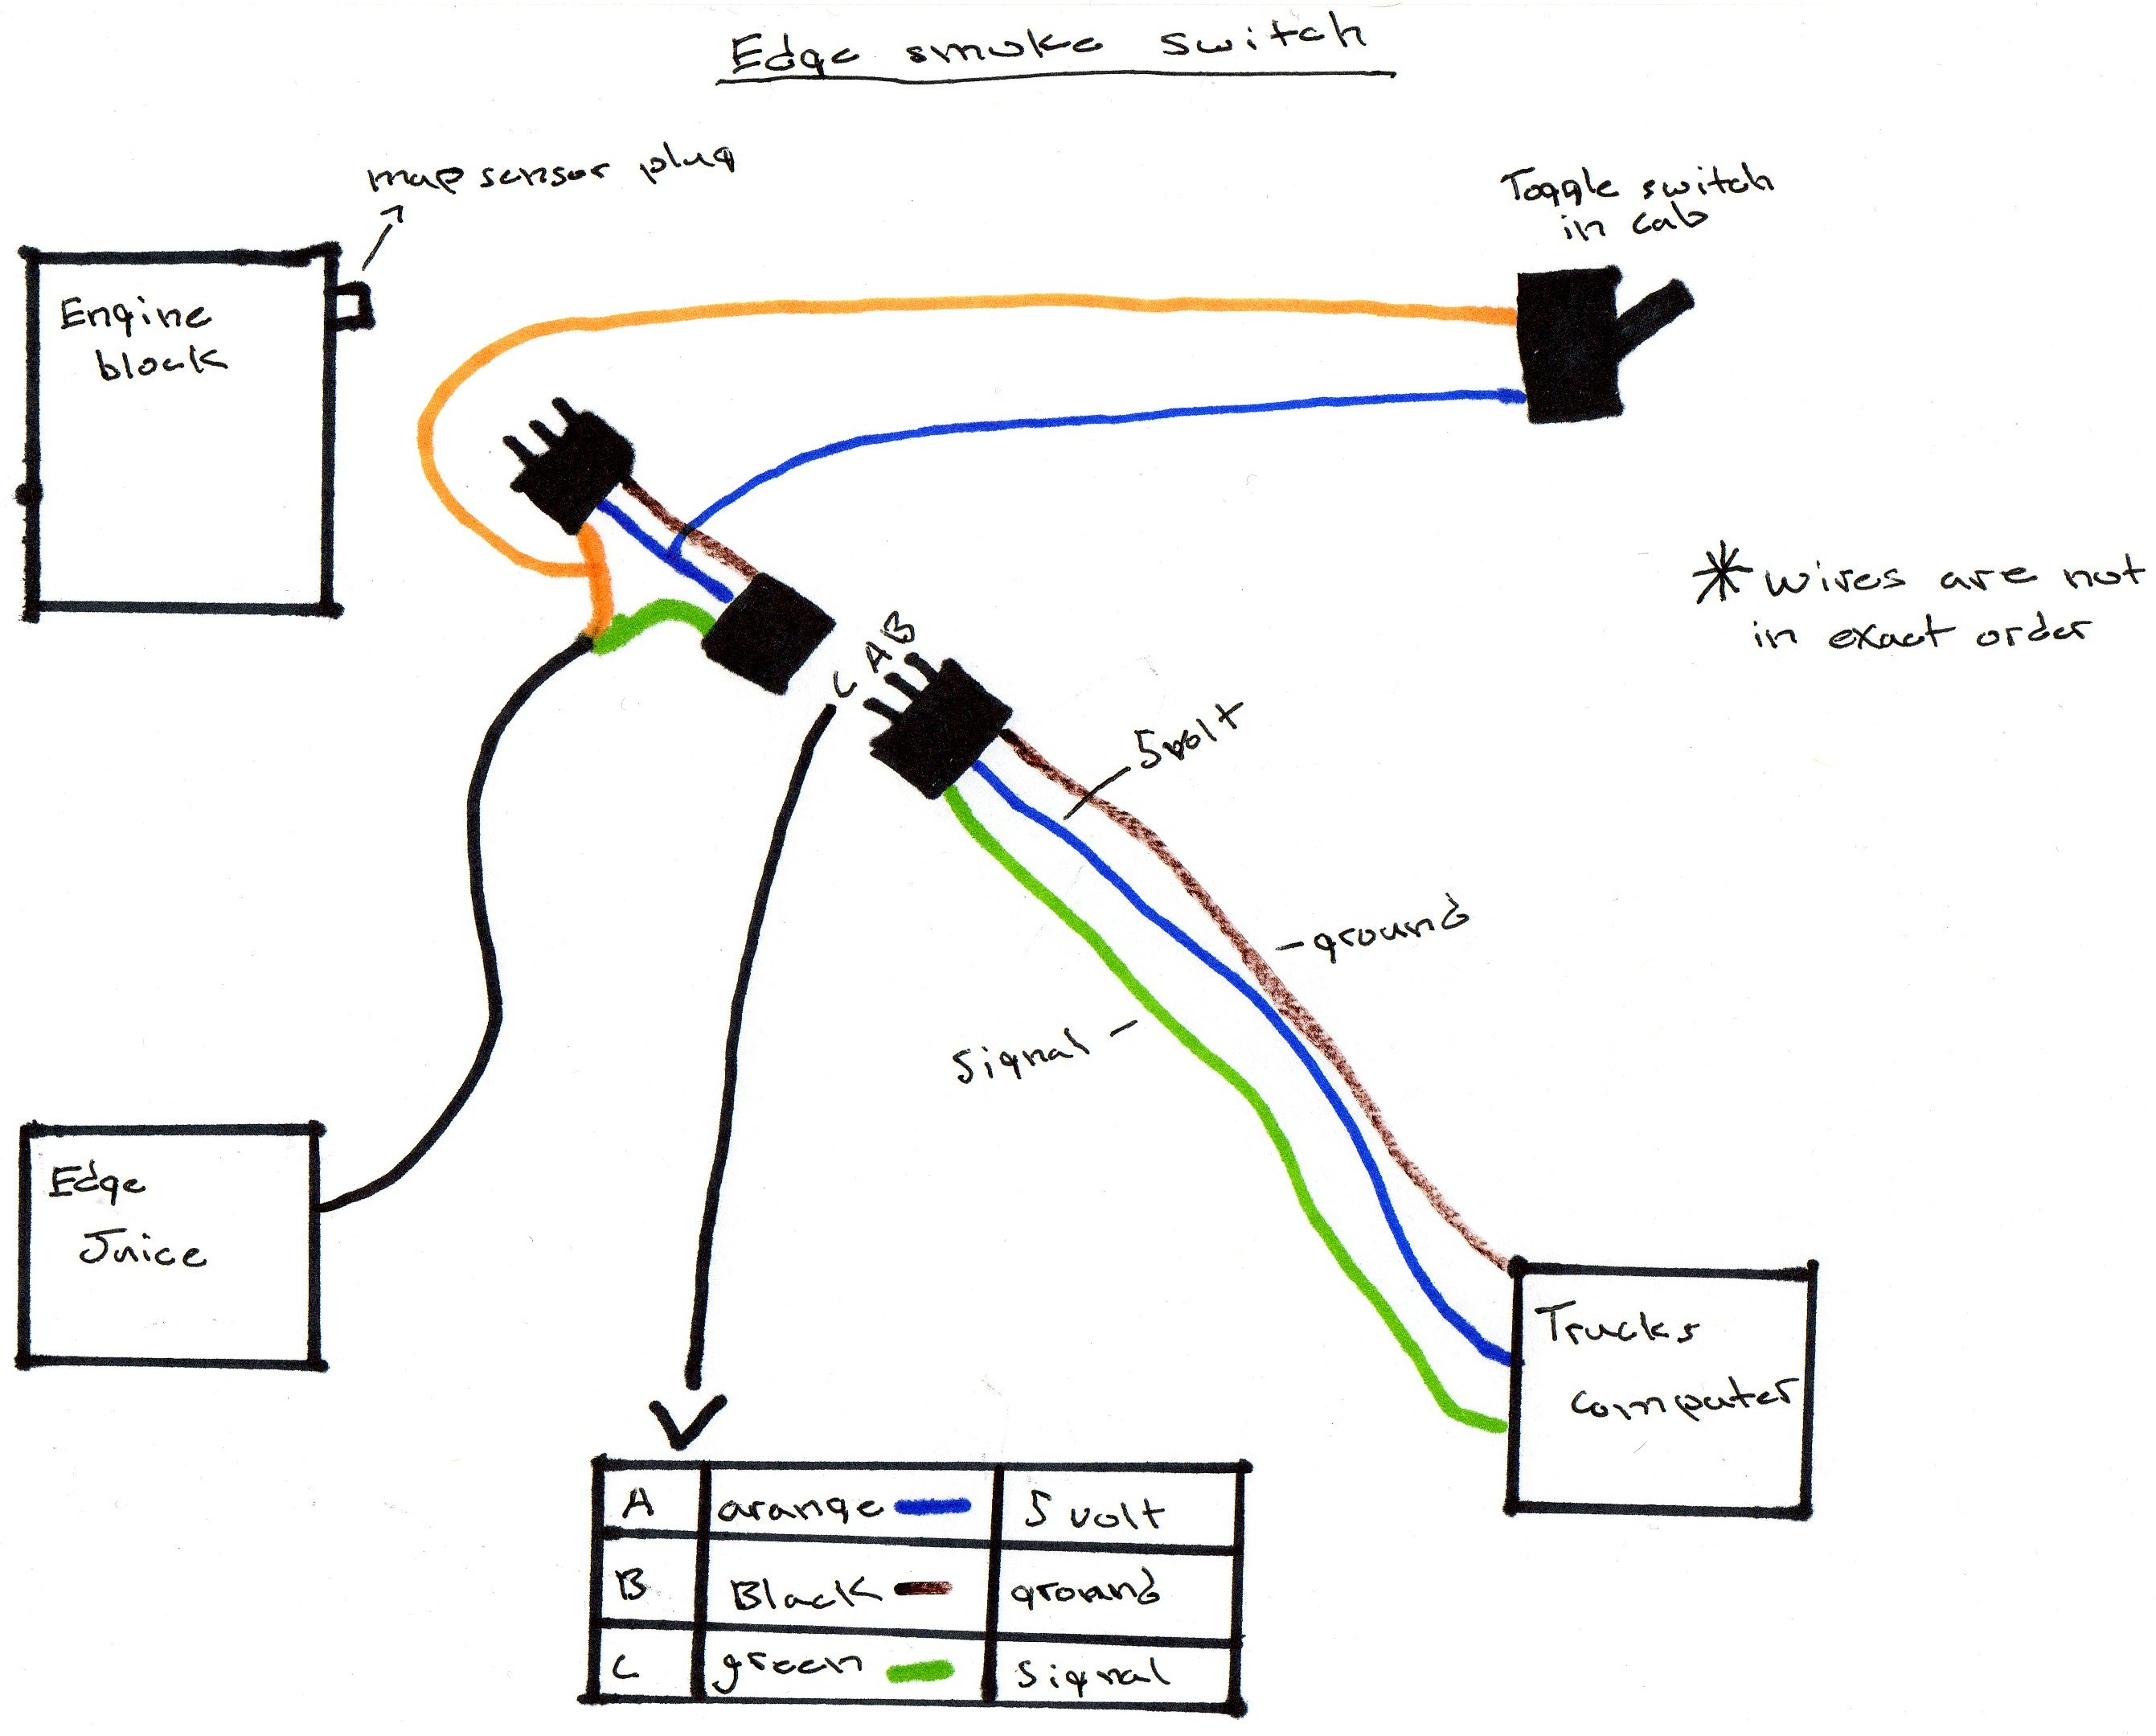 Juice/w Additude smoke switch - Page 2 - Dodge mins Diesel Forum on cummins diesel engine diagram, vp44 wiring connections, dodge diesel fuel system diagram, vp44 parts, vp44 harness diagram, ve pump diagram, injection pump diagram,